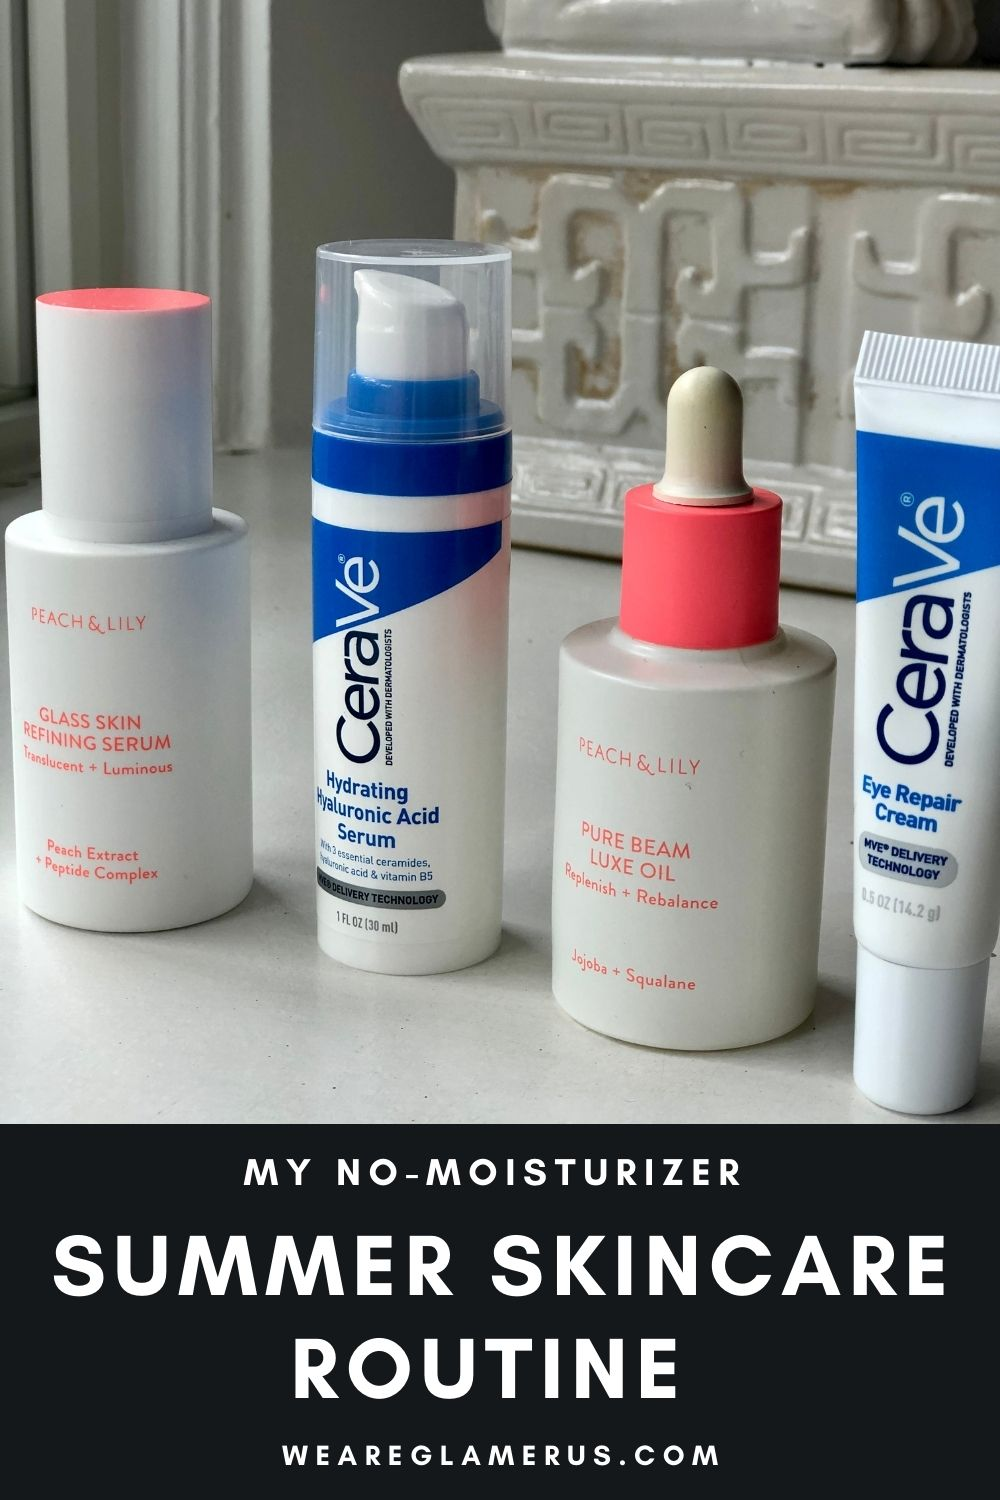 In today's post I talk you through my current no-moisturizer summer skincare routine!